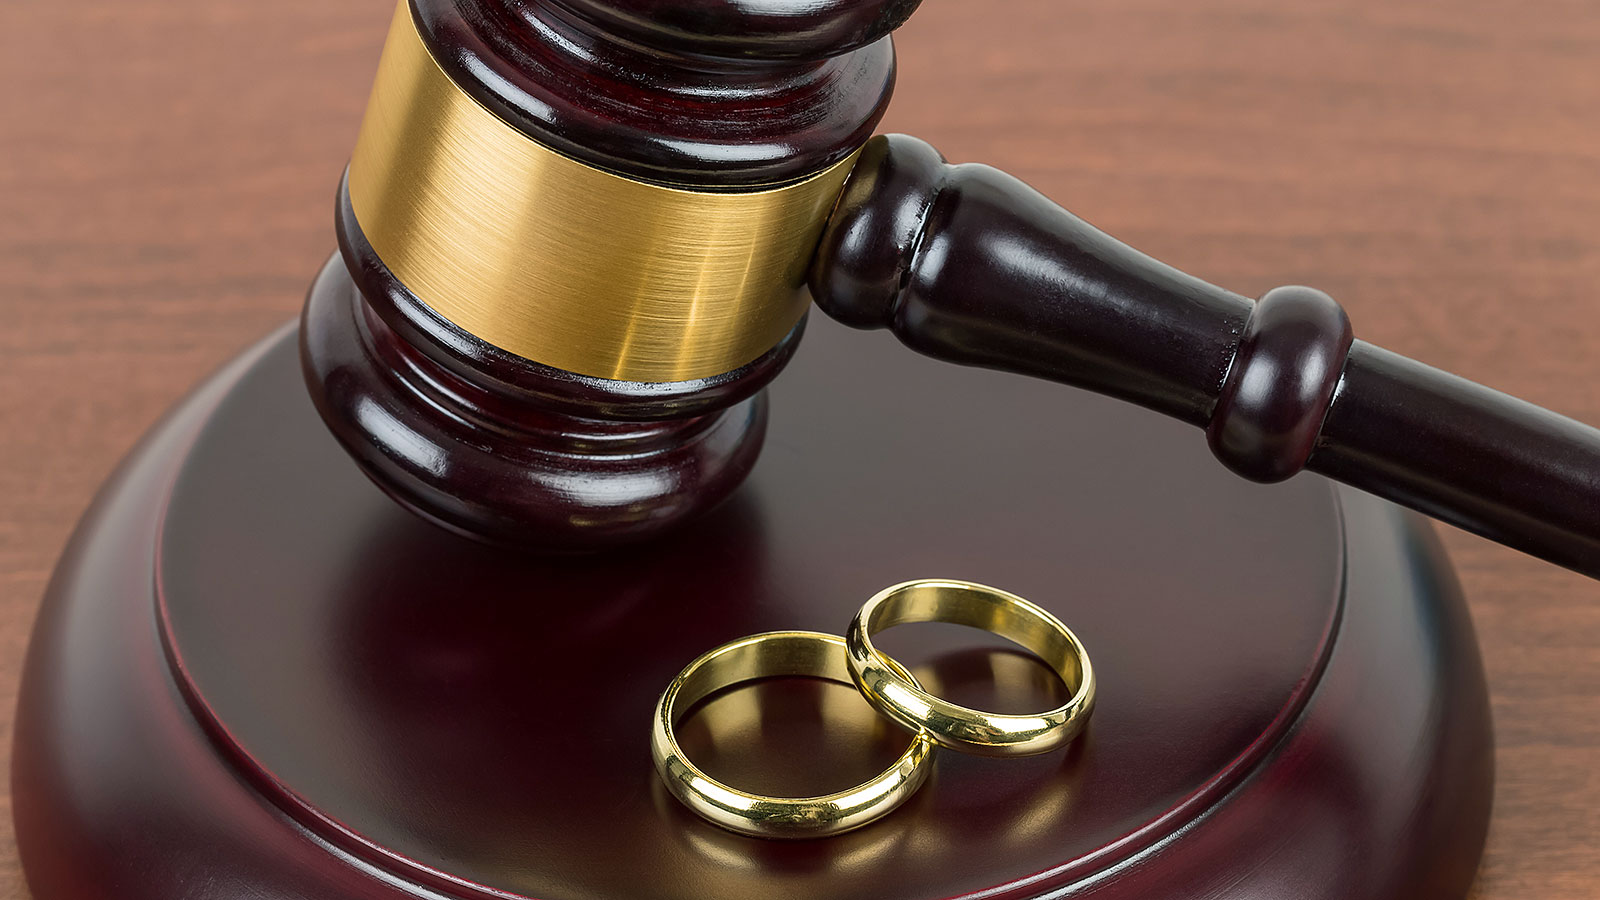 Getting a divorce: 5 steps to help protect your finances